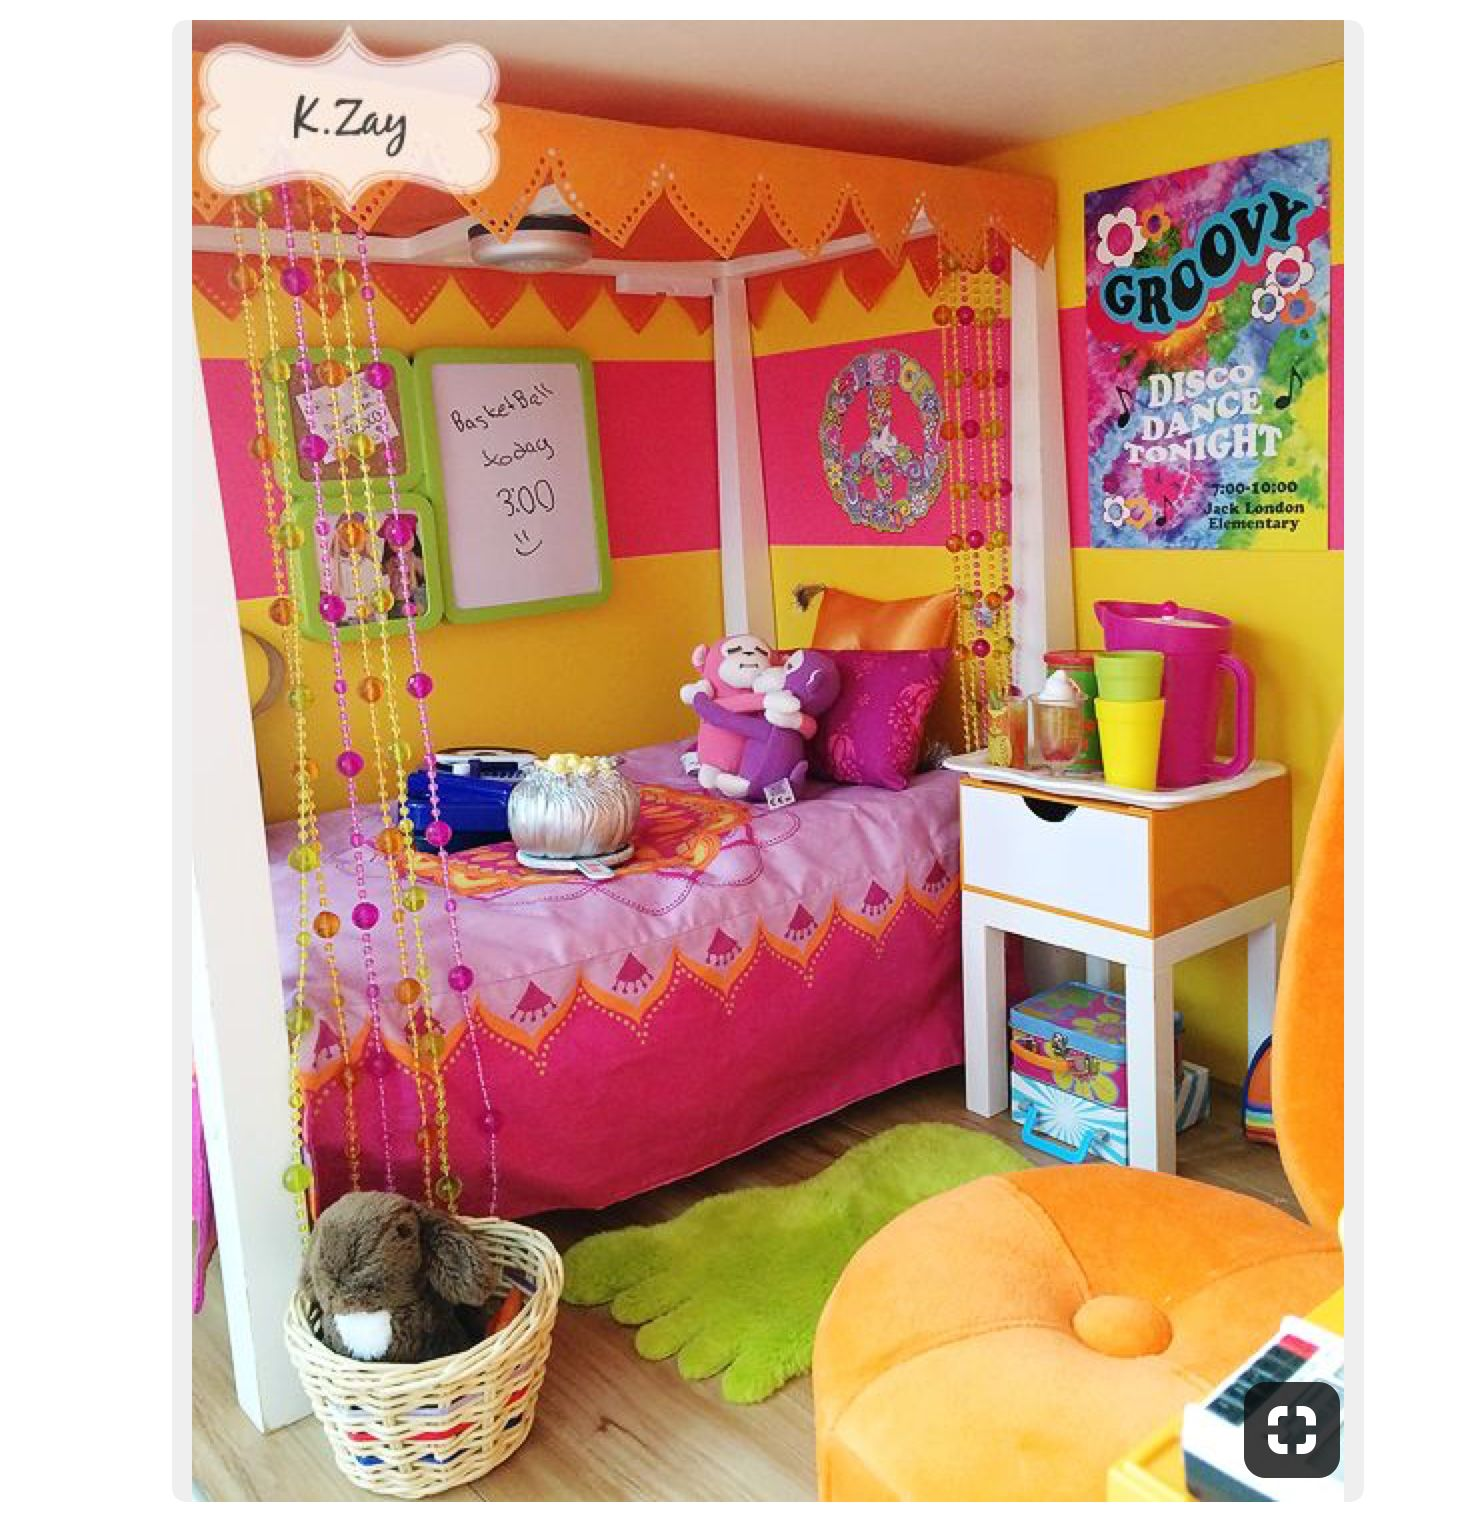 My granddaughters JLY doll in bedroom she shares with